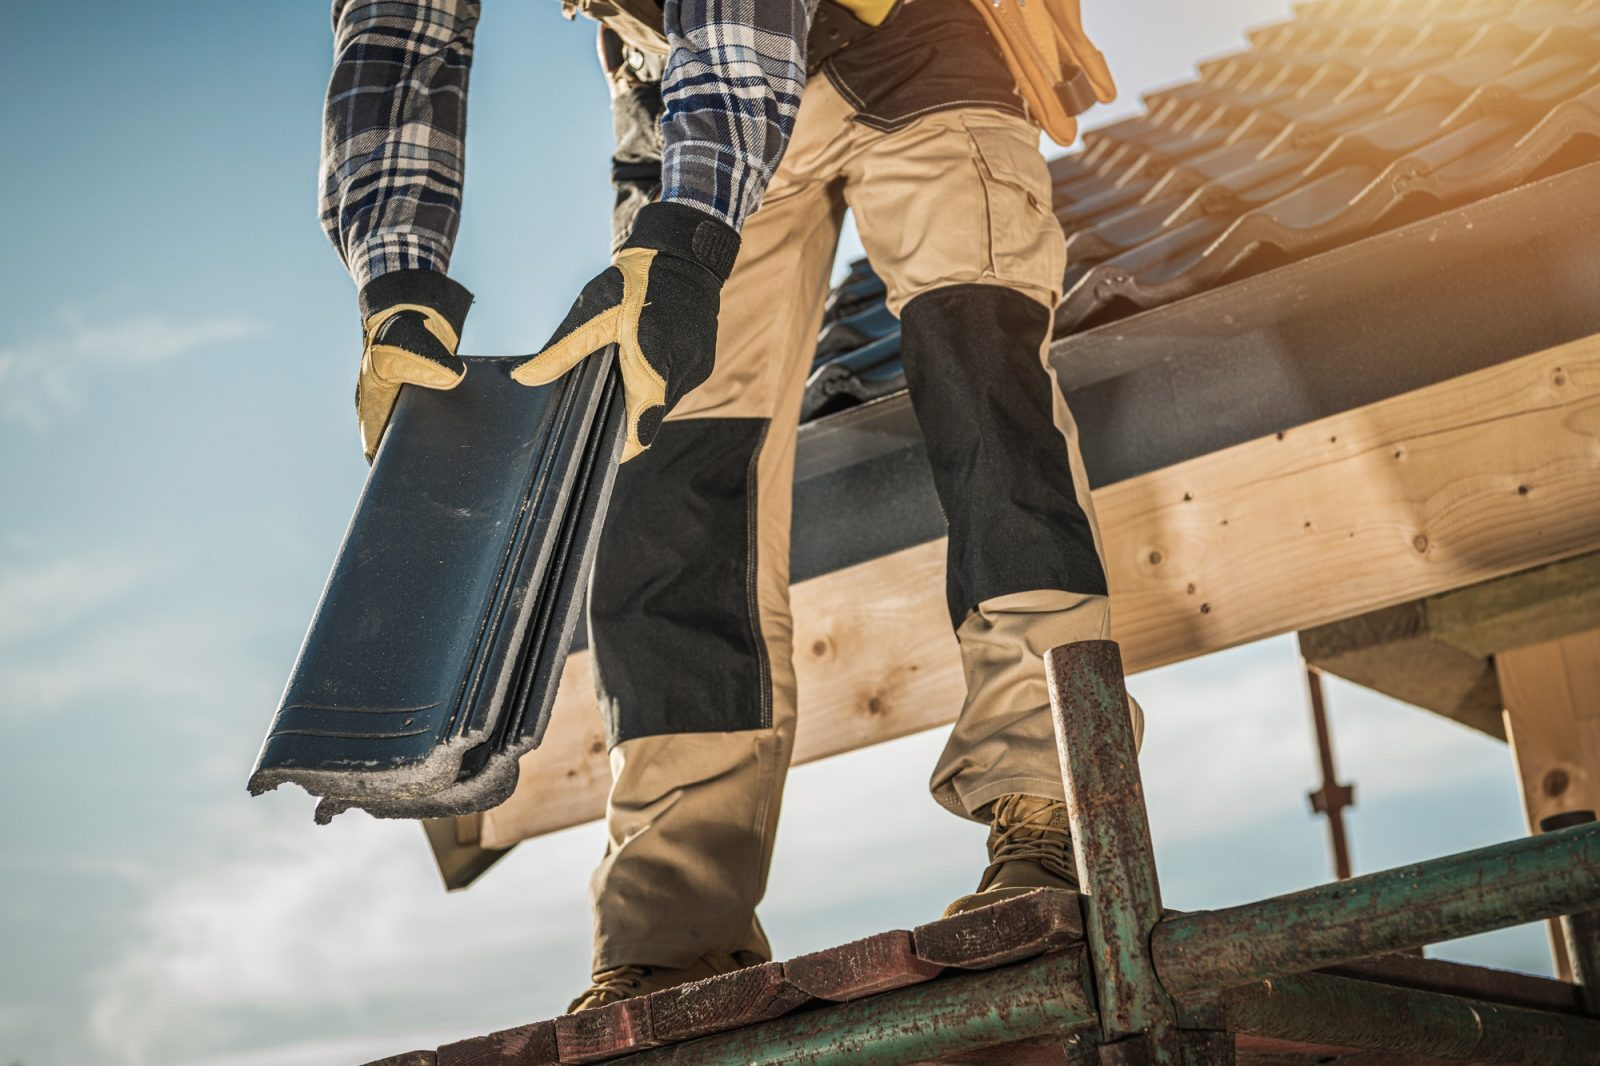 best roofing company on long island